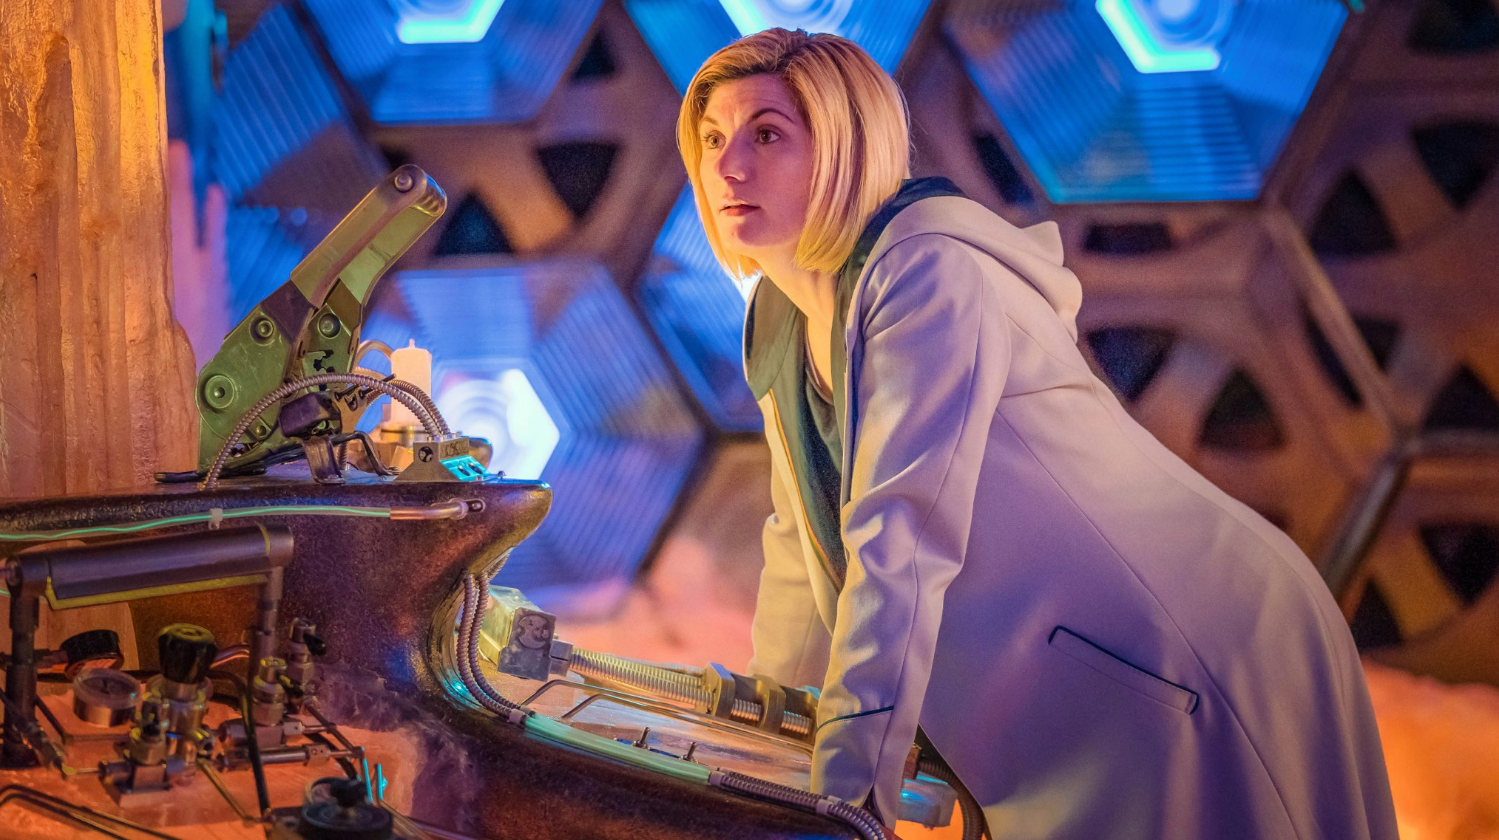 Doctor Who's Next Season Lands In 2020